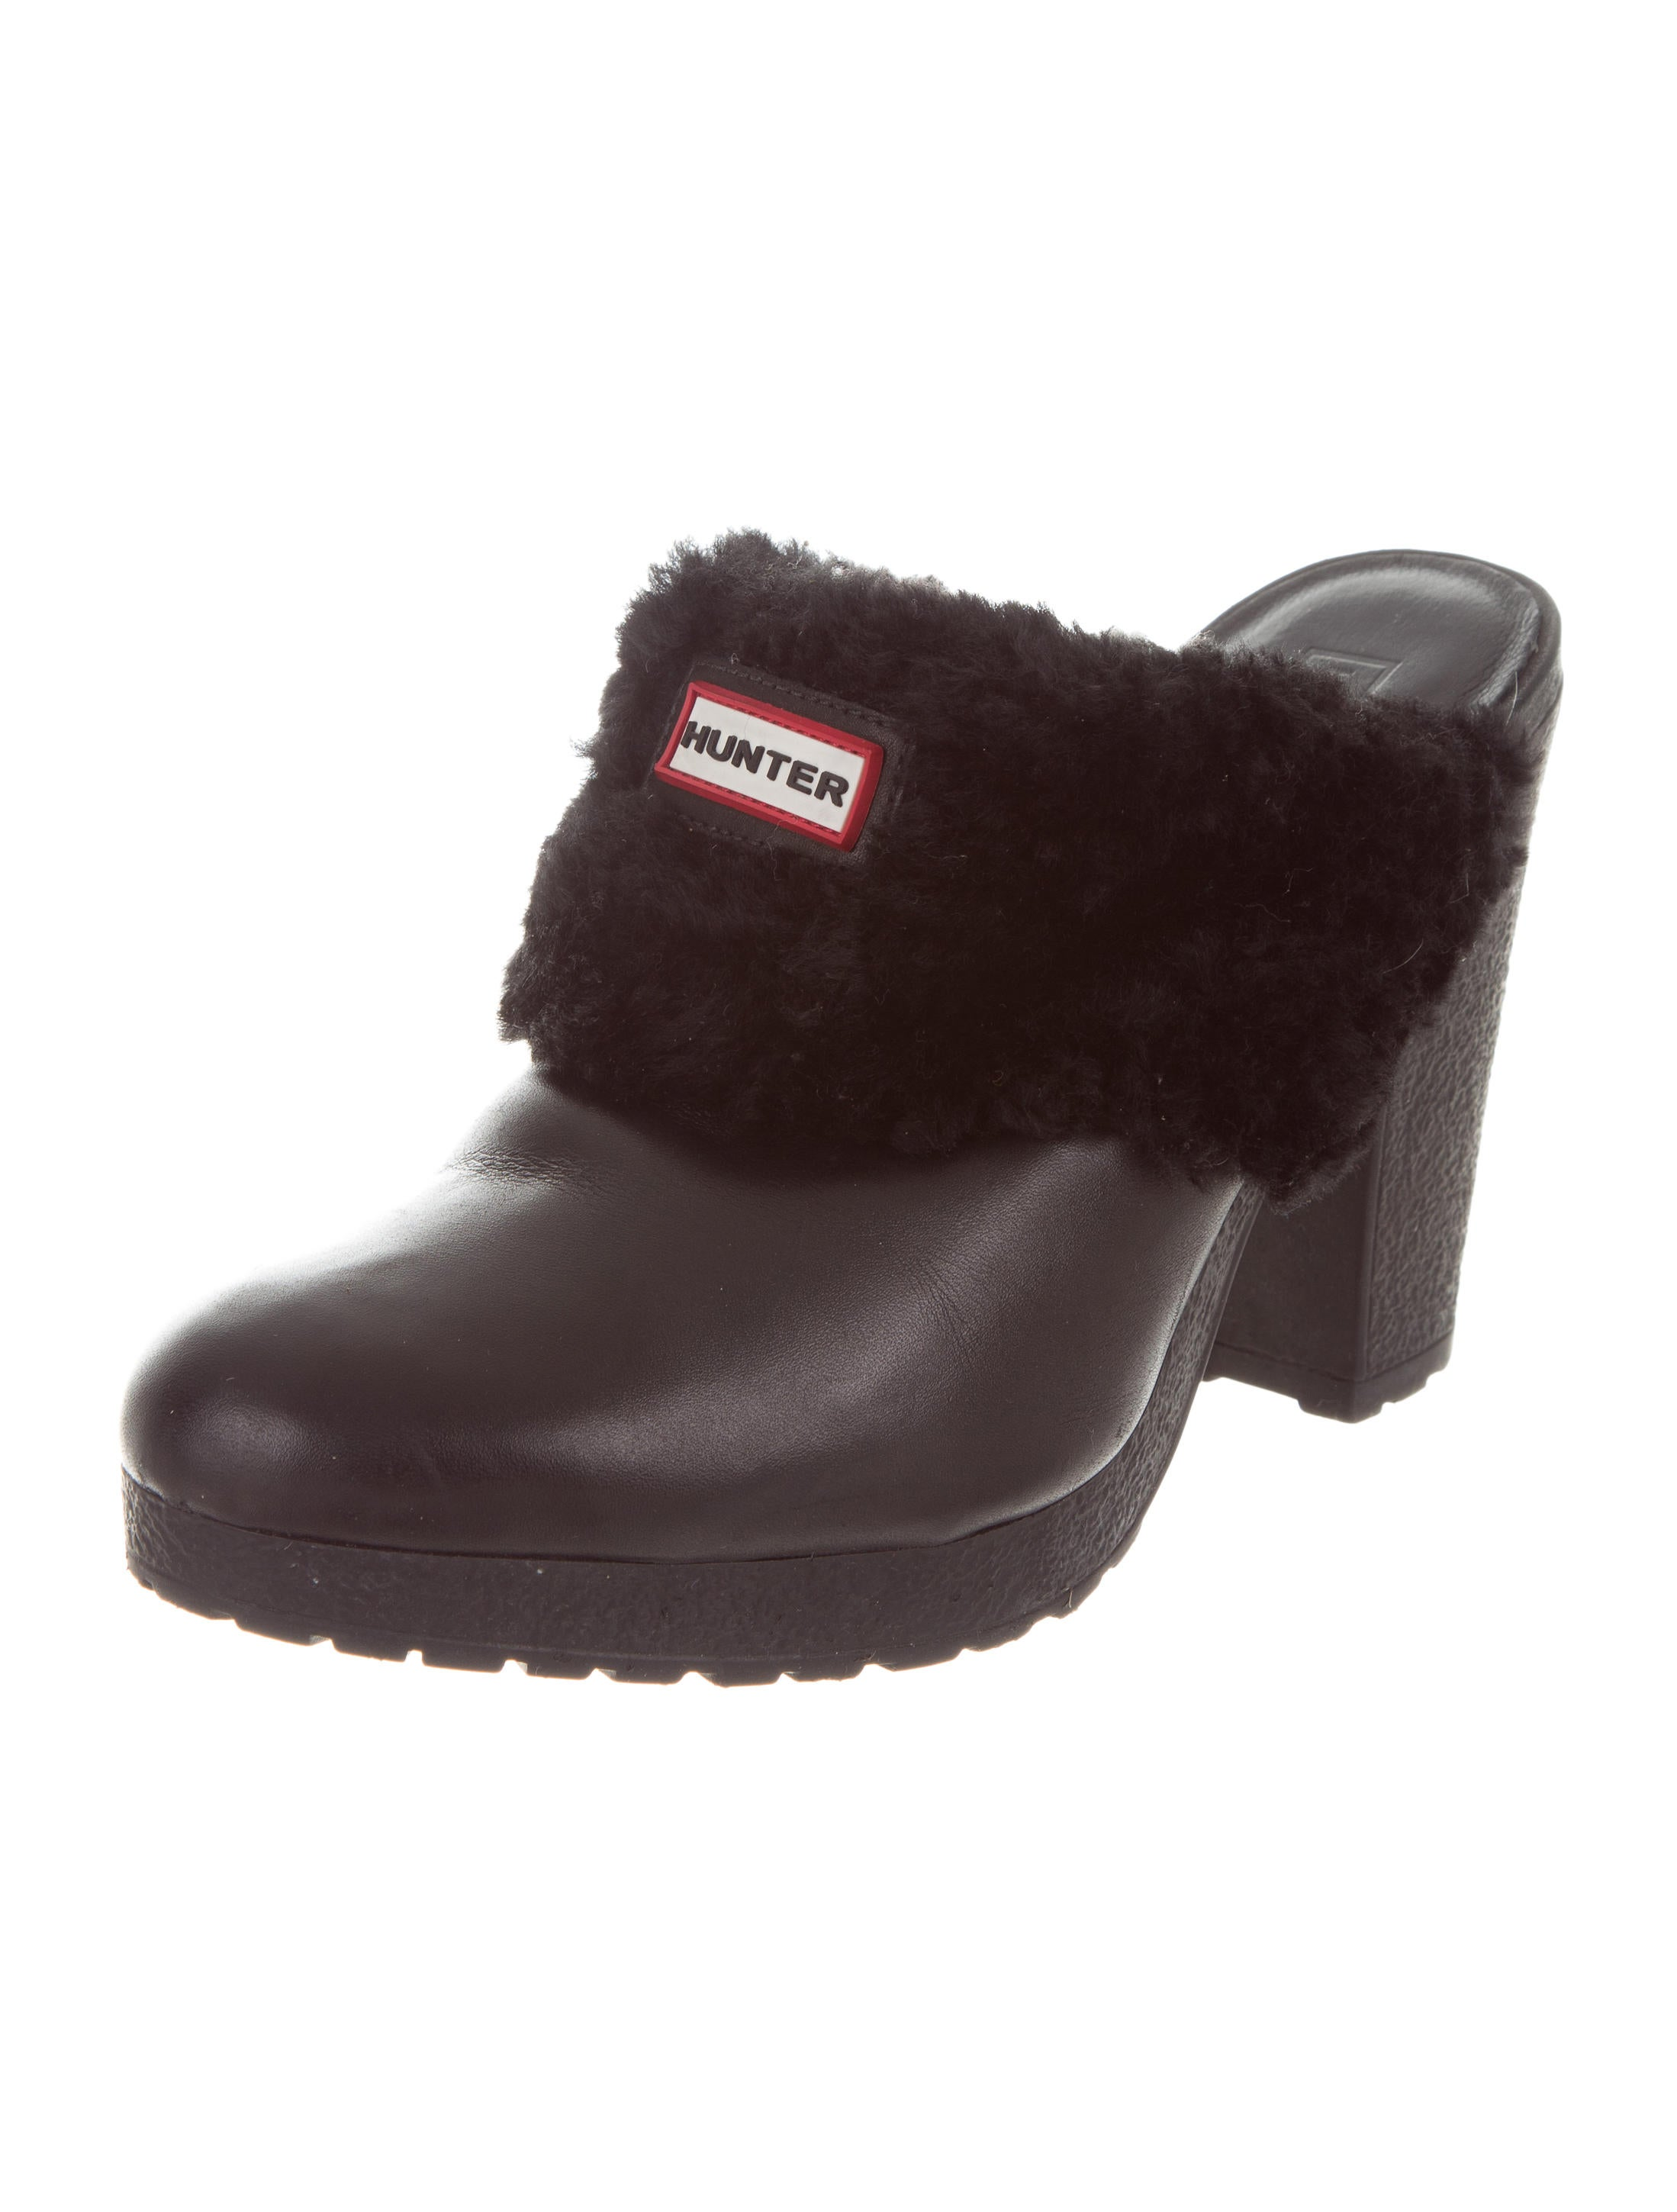 shipping discount sale buy cheap fashion Style Hunter Shearling-Trimmed Leather Mules buy cheap largest supplier AkpEt34e6